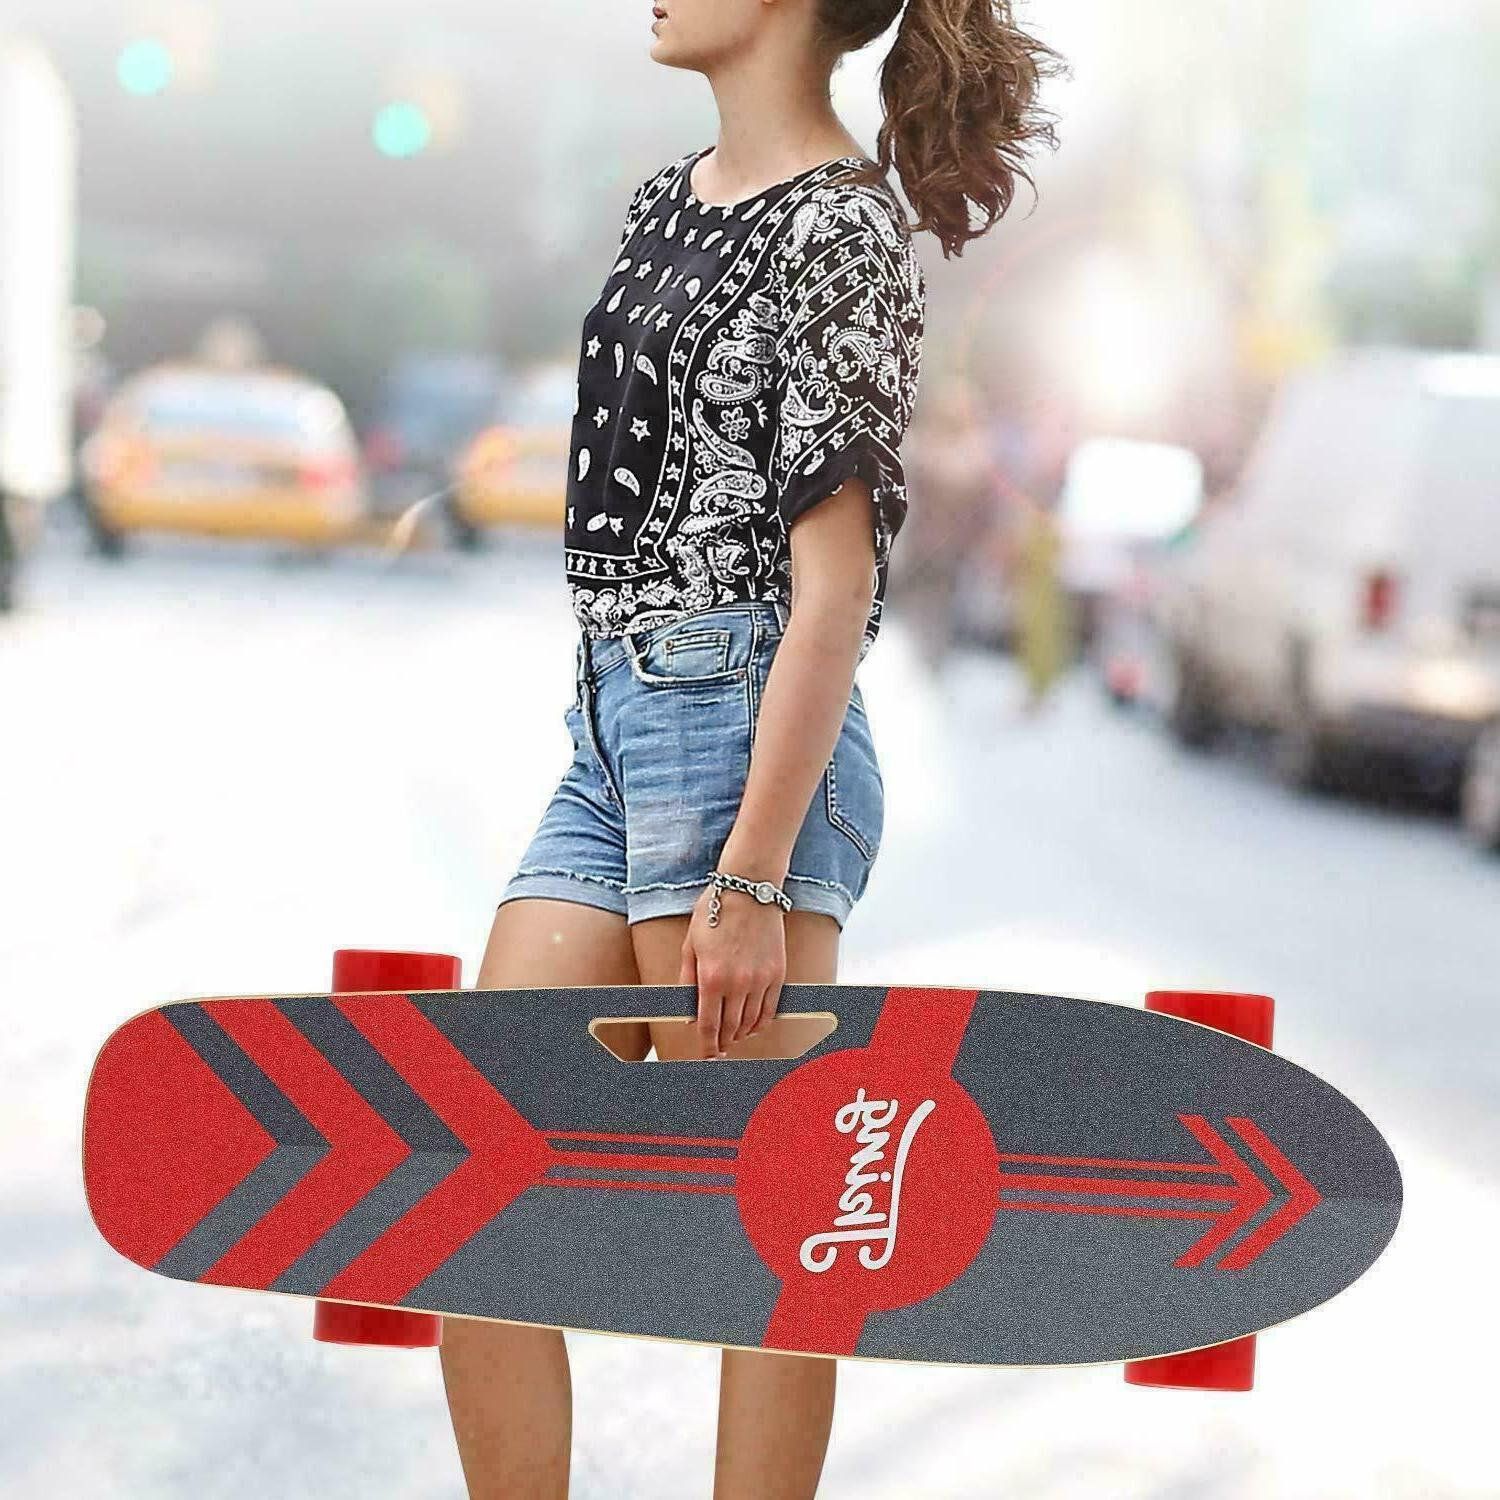 Ancheer Youth Electric Skateboard Electric Longboard w/ Wire